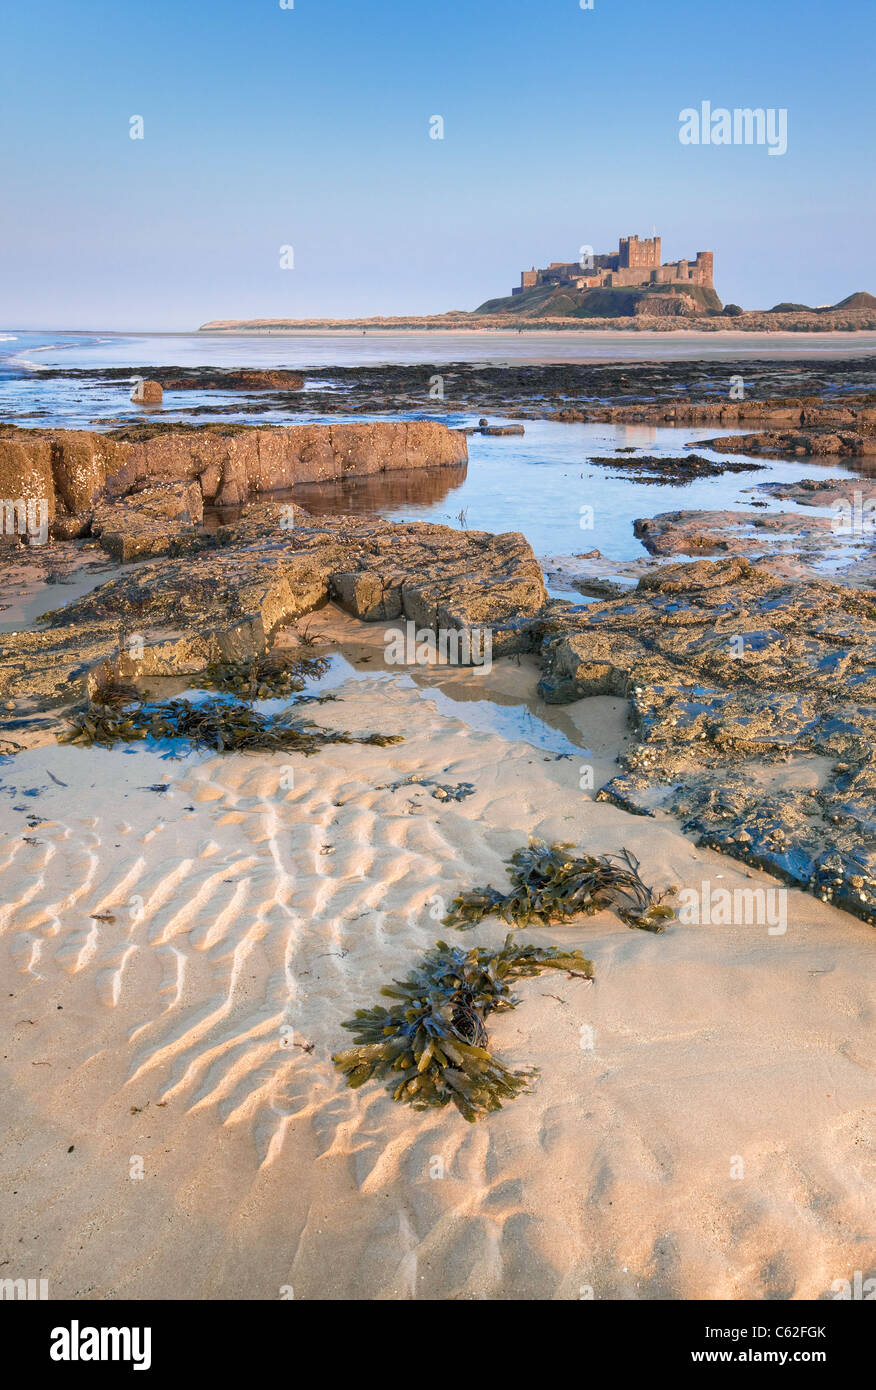 Bamburgh Castle located on the coast at Bamburgh in Northumberland, England. - Stock Image